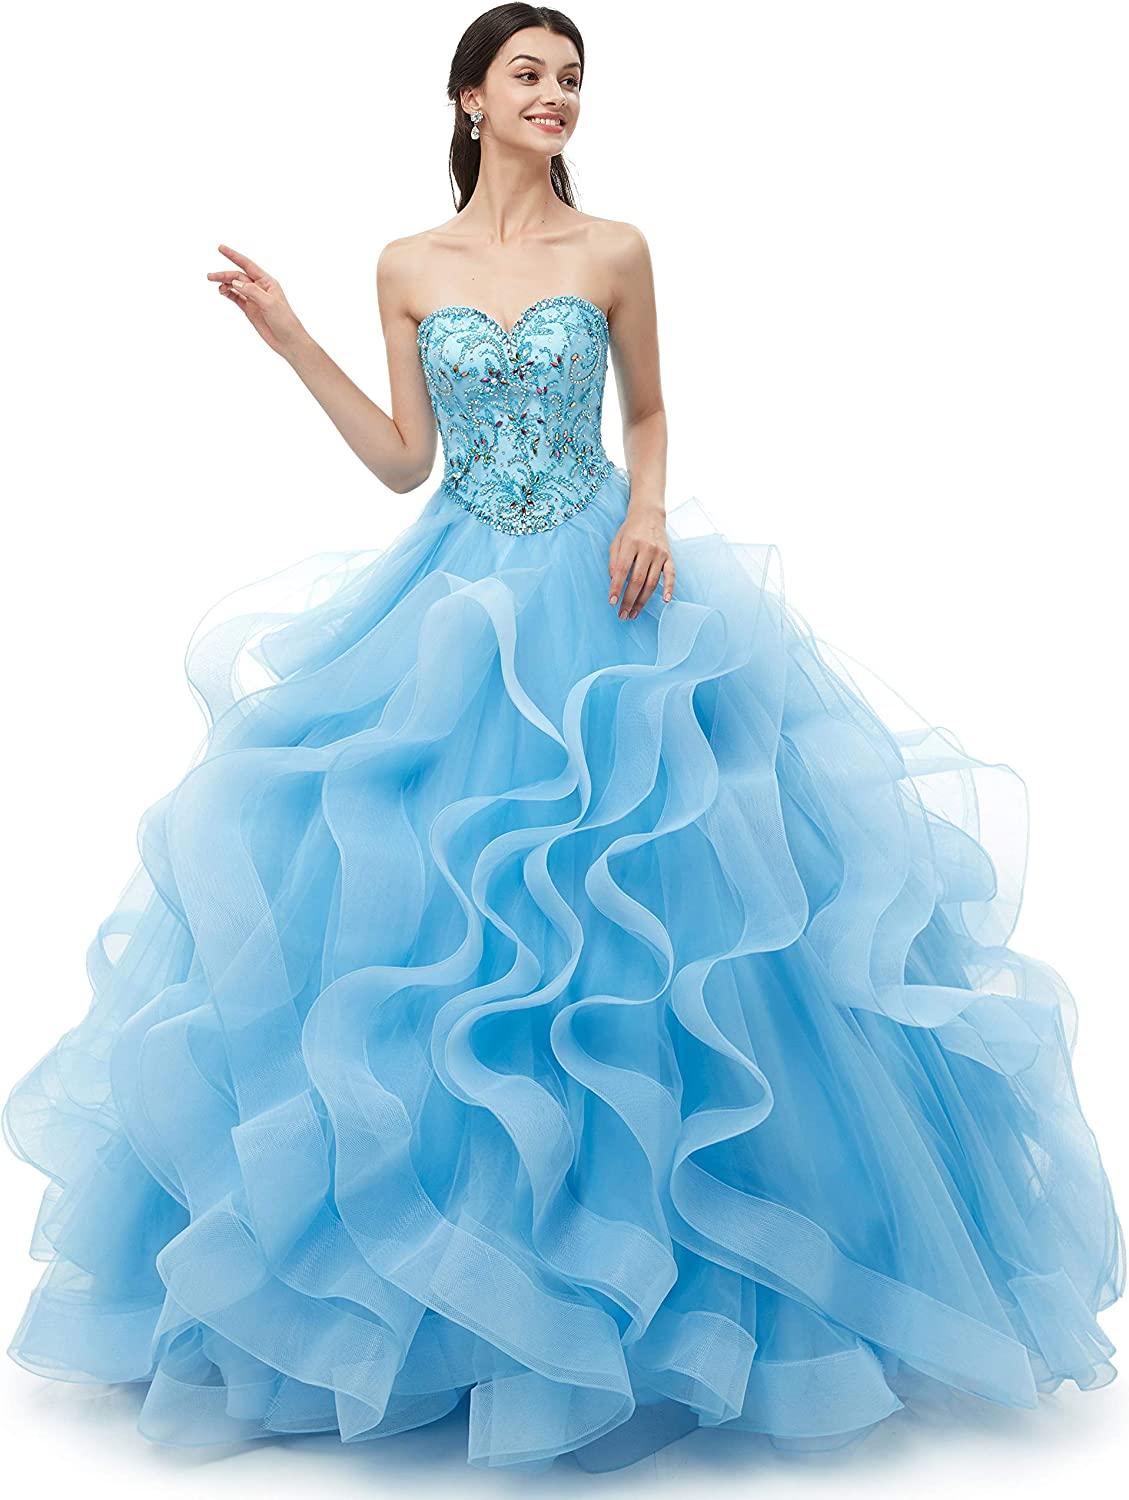 Maricopyjam Women's Heavy Beaded Ball Gown Quinceanera Dresses Ruffles Prom Gowns